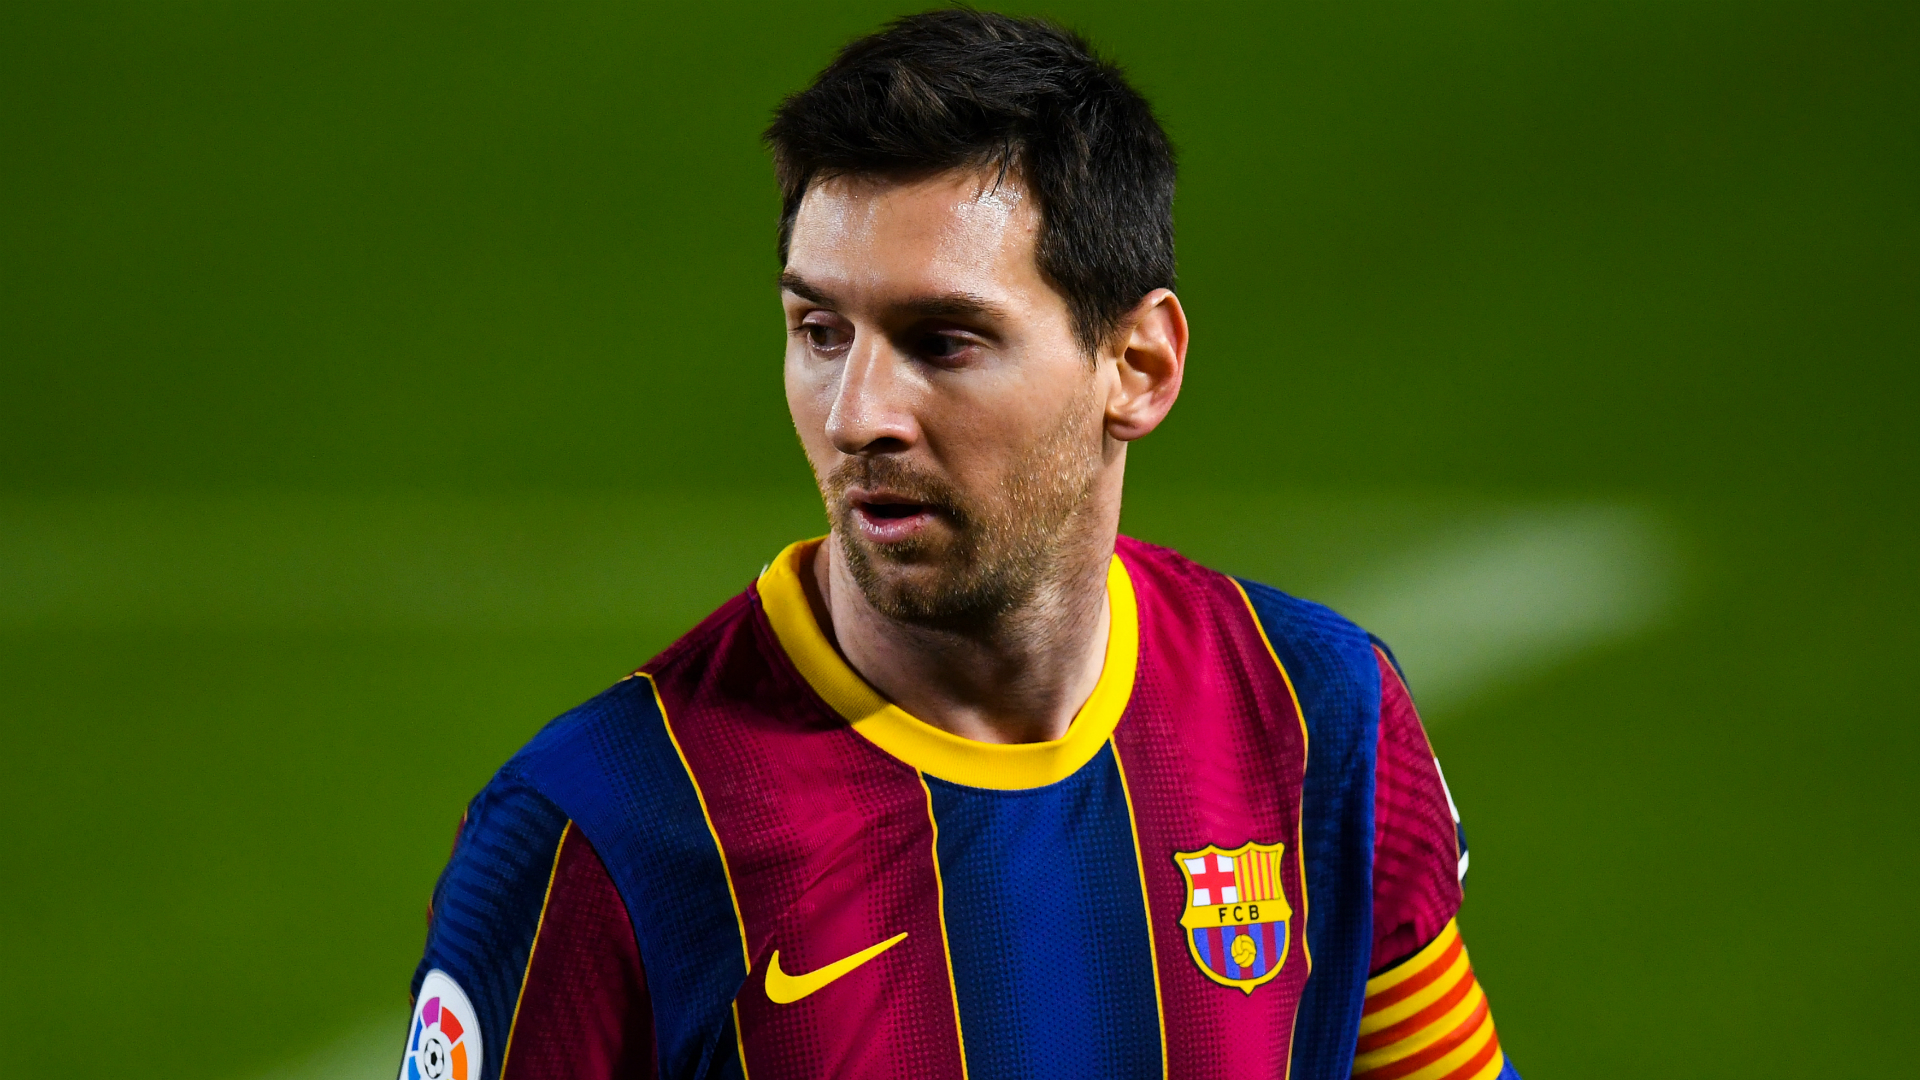 Laporta: I want Messi to stay at Barcelona